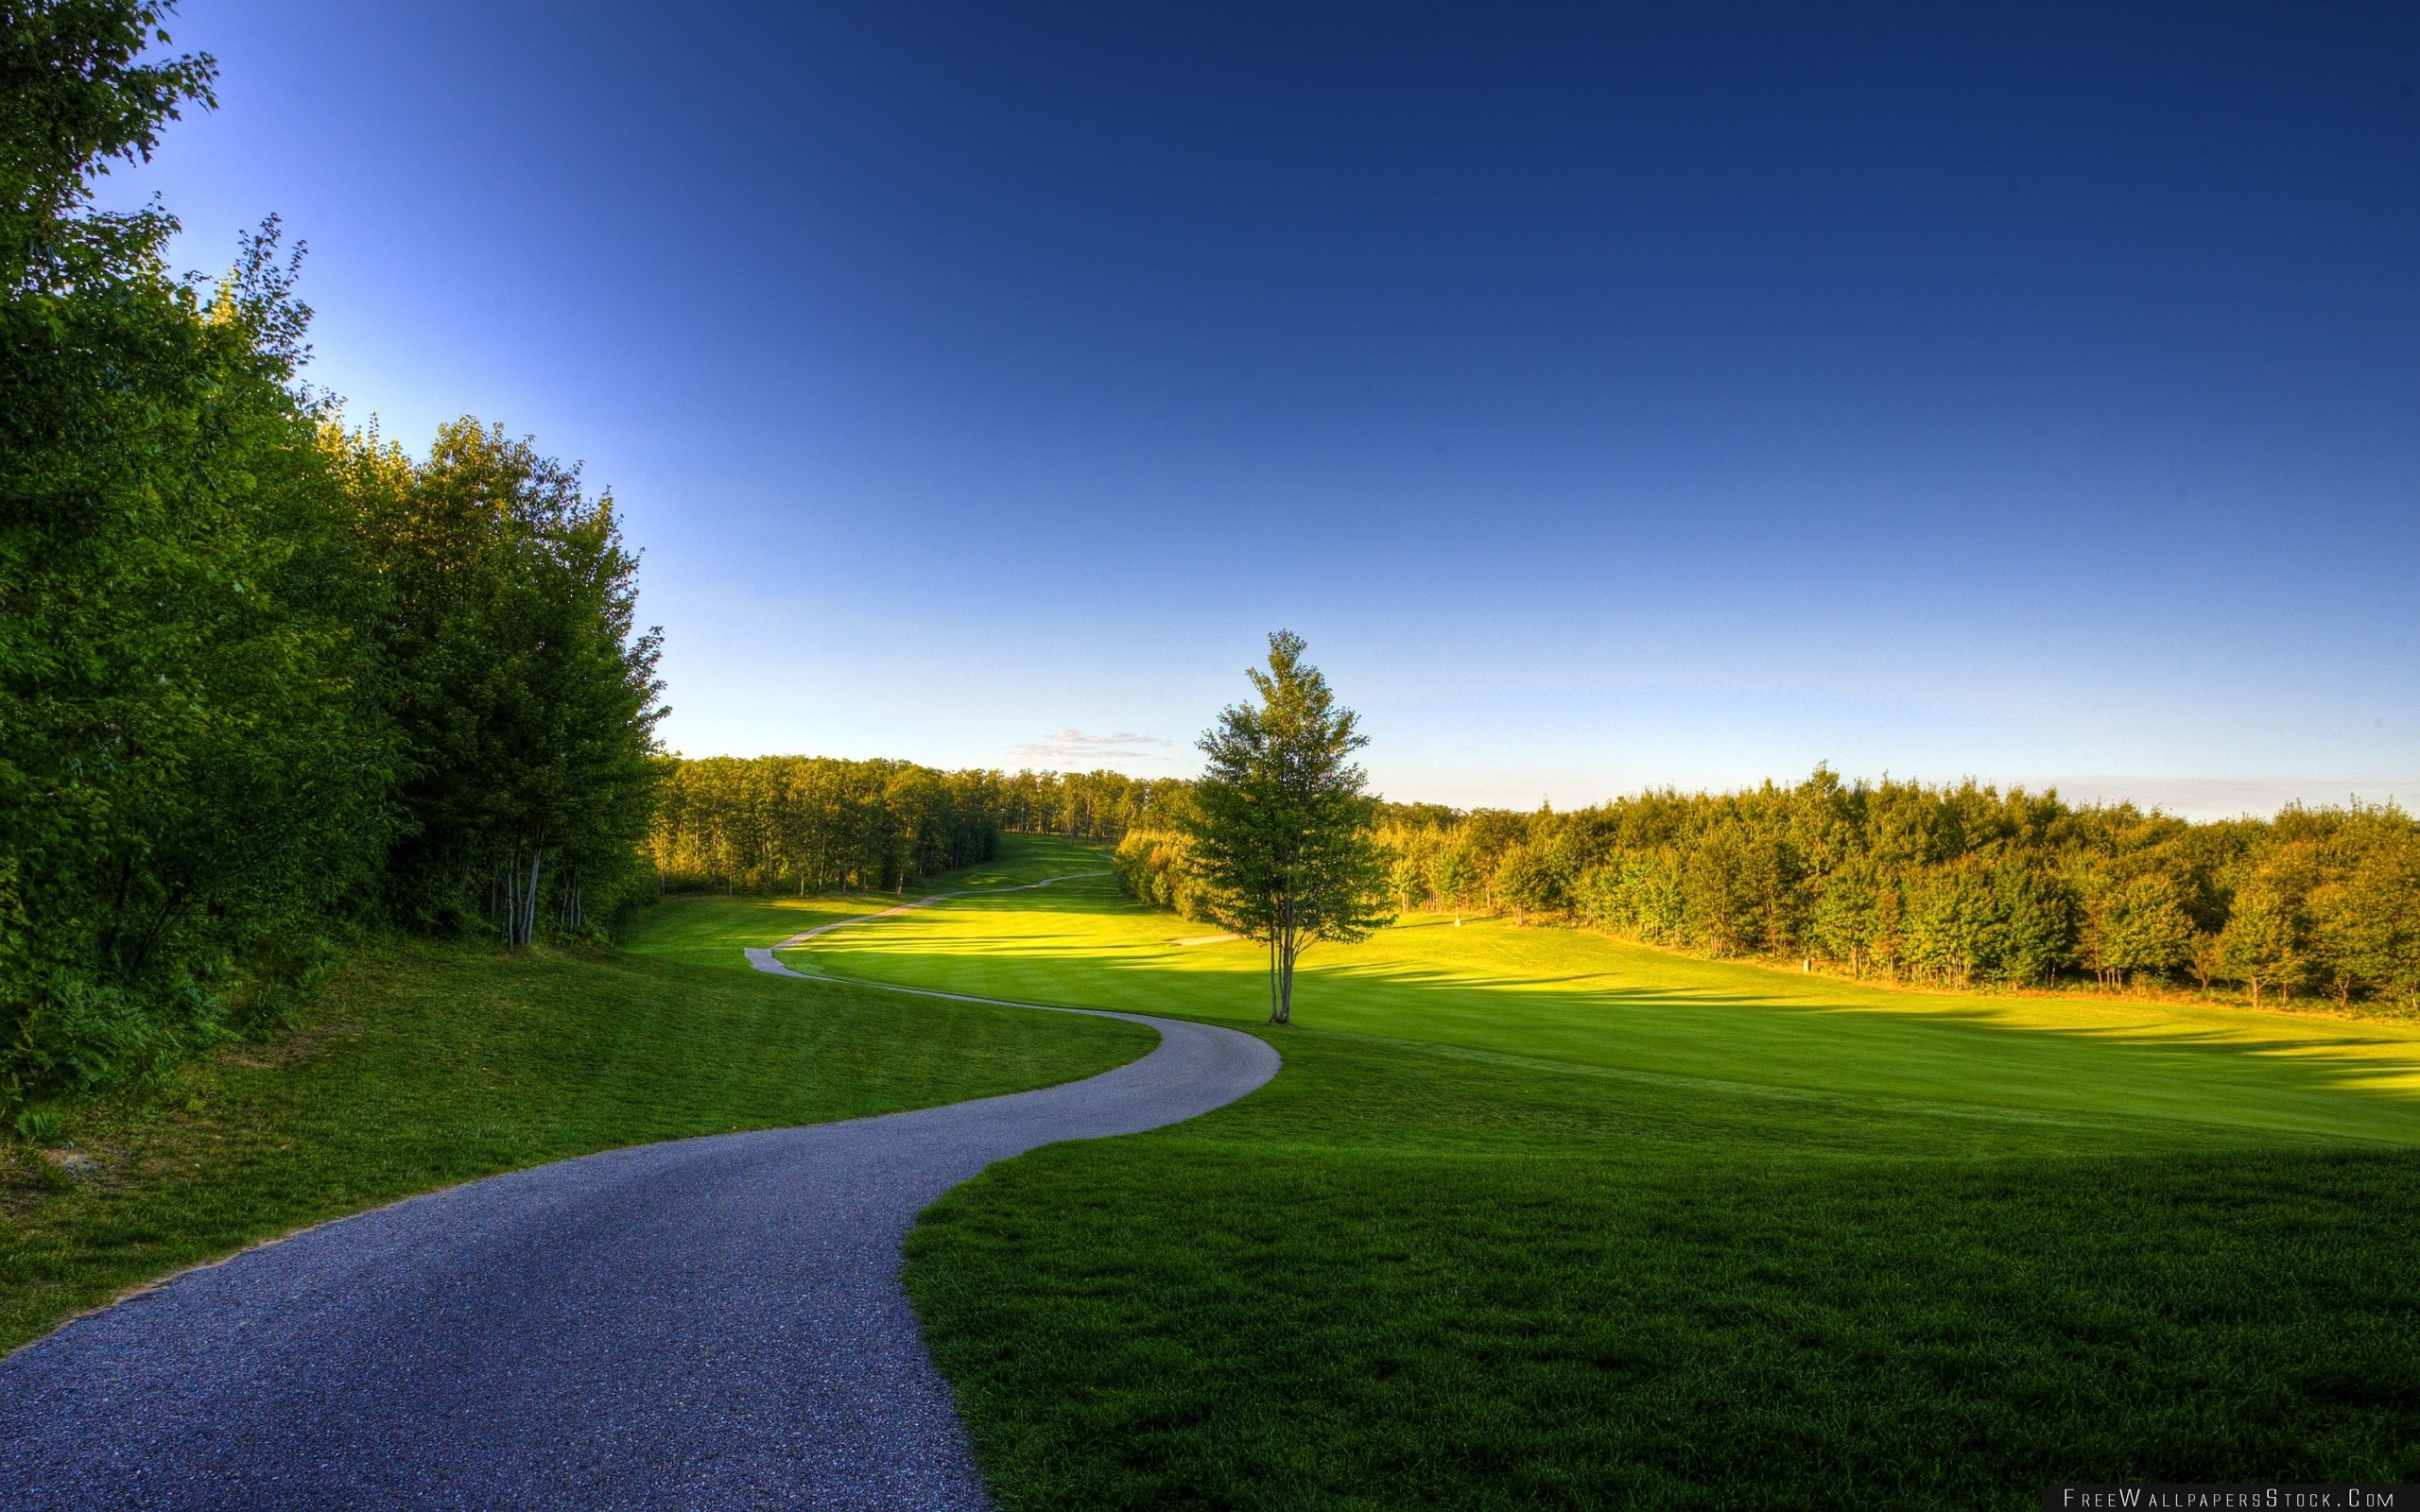 Download Free Wallpaper Path Wood Tree Grass Shadow Greens Summer Reserve Open Spaces Landscape